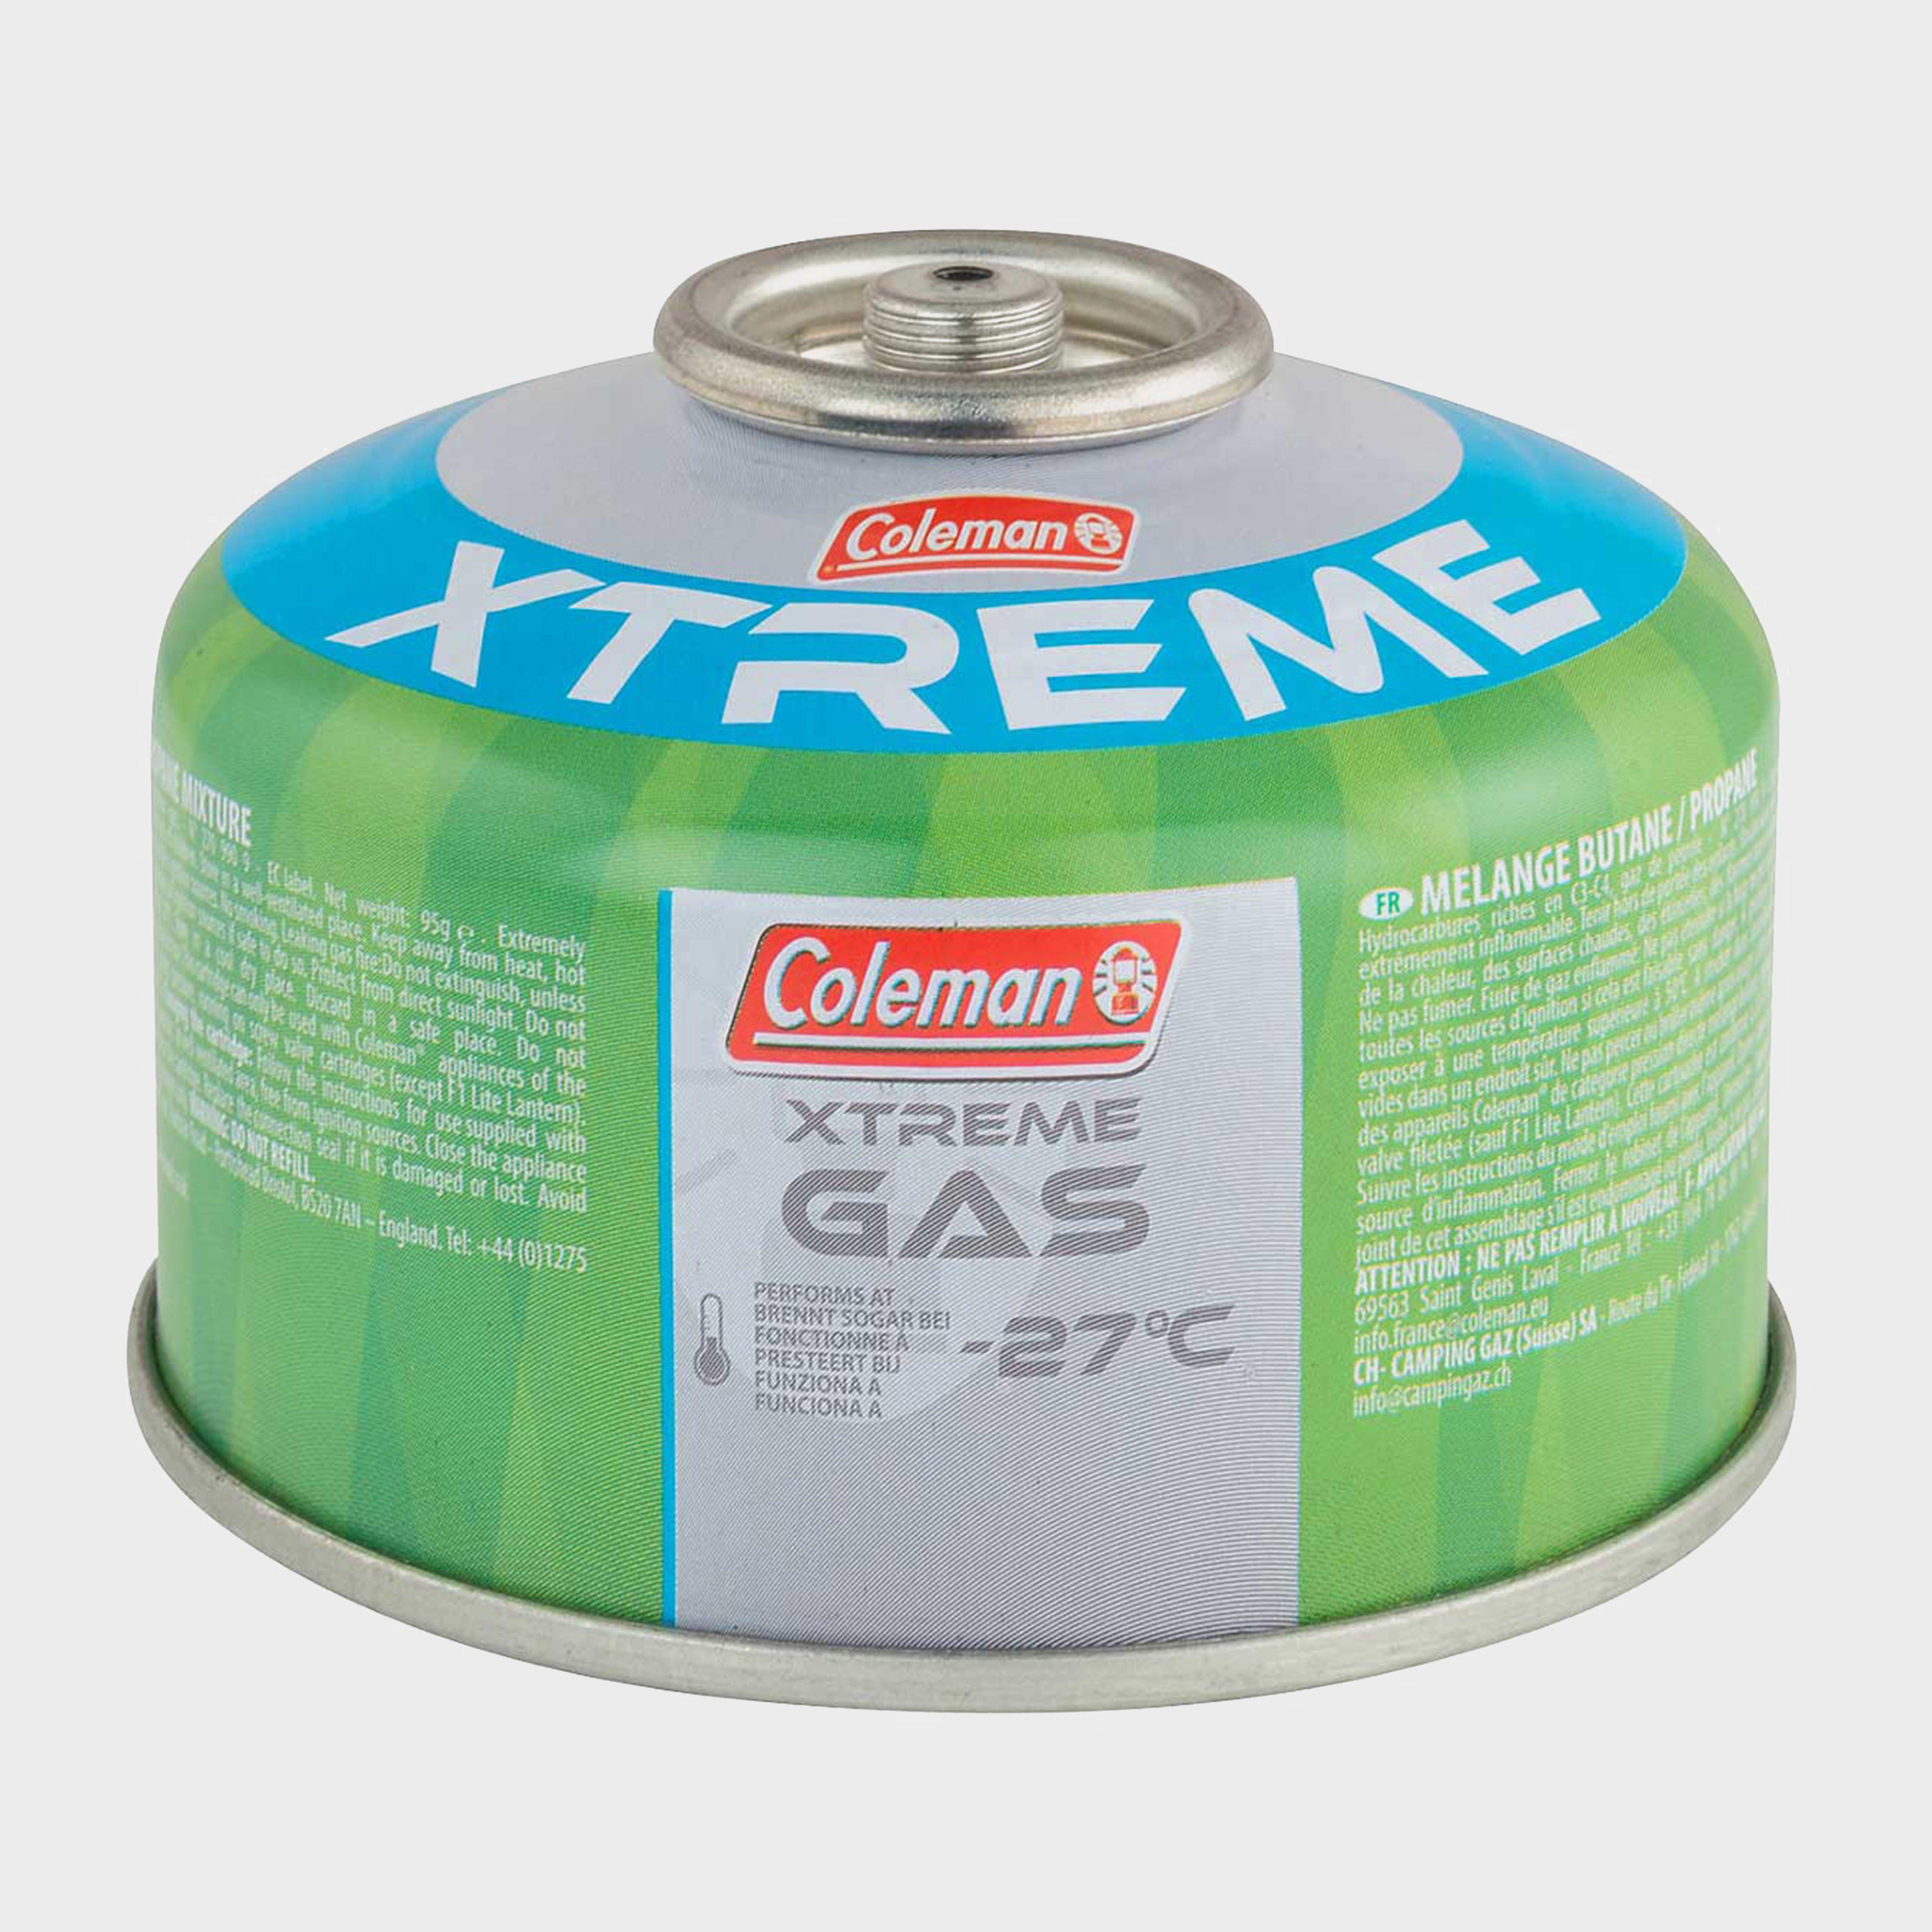 Coleman Coleman C100 Xtreme Gas Cartridge - Assorted, Assorted